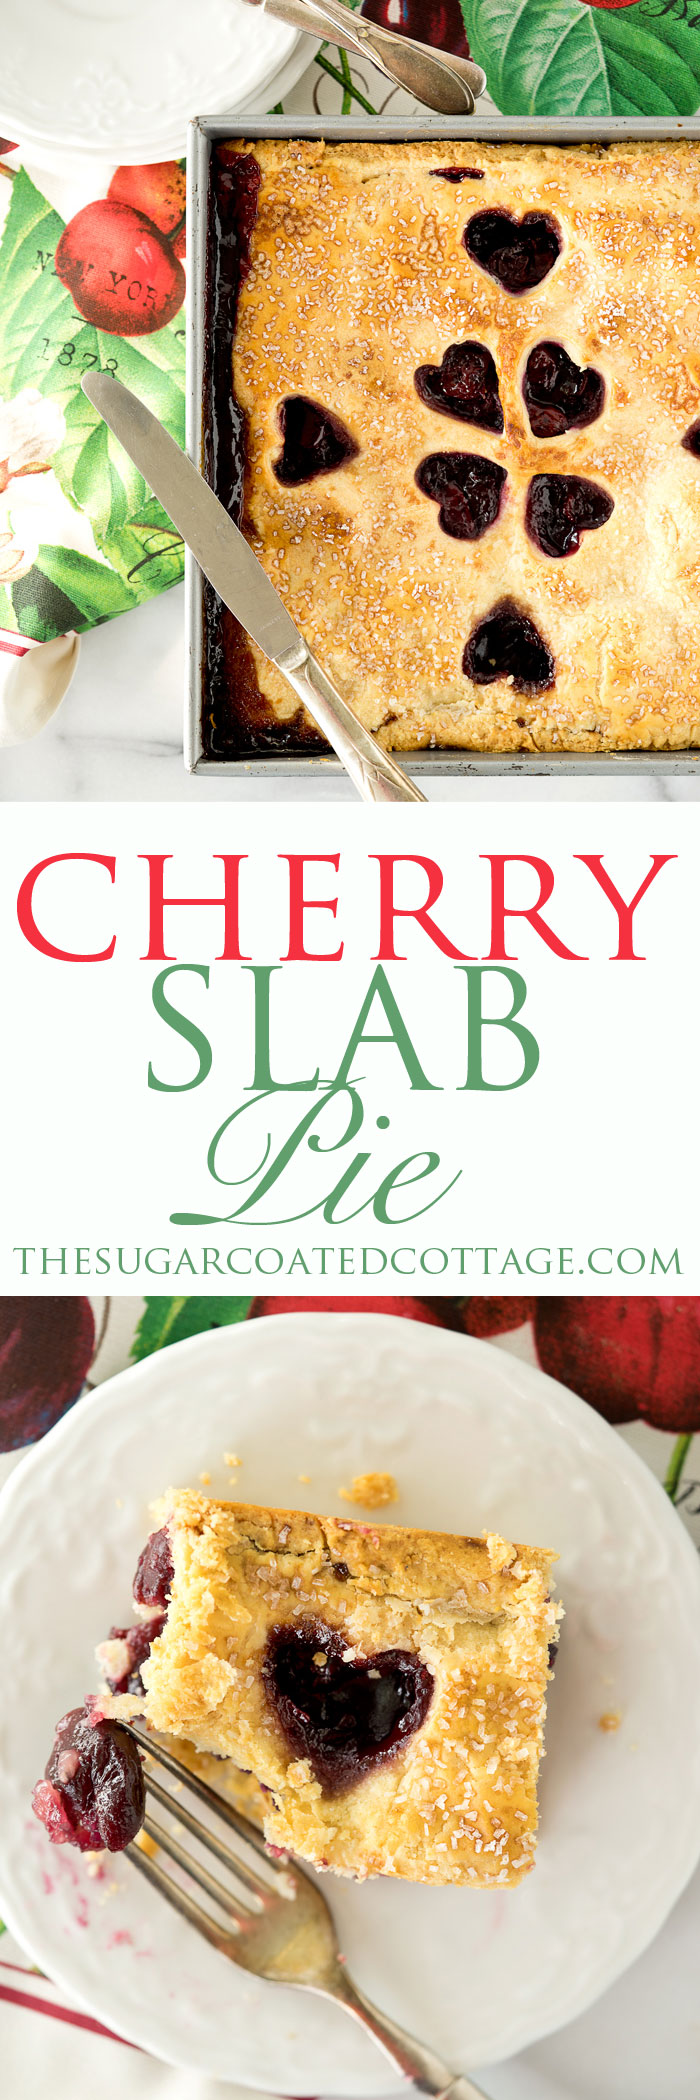 1/2 Slab Cherry Pie. Simple recipe for a small family sized Classic Cherry Slab Pie.   thesugarcoatedcottage.com